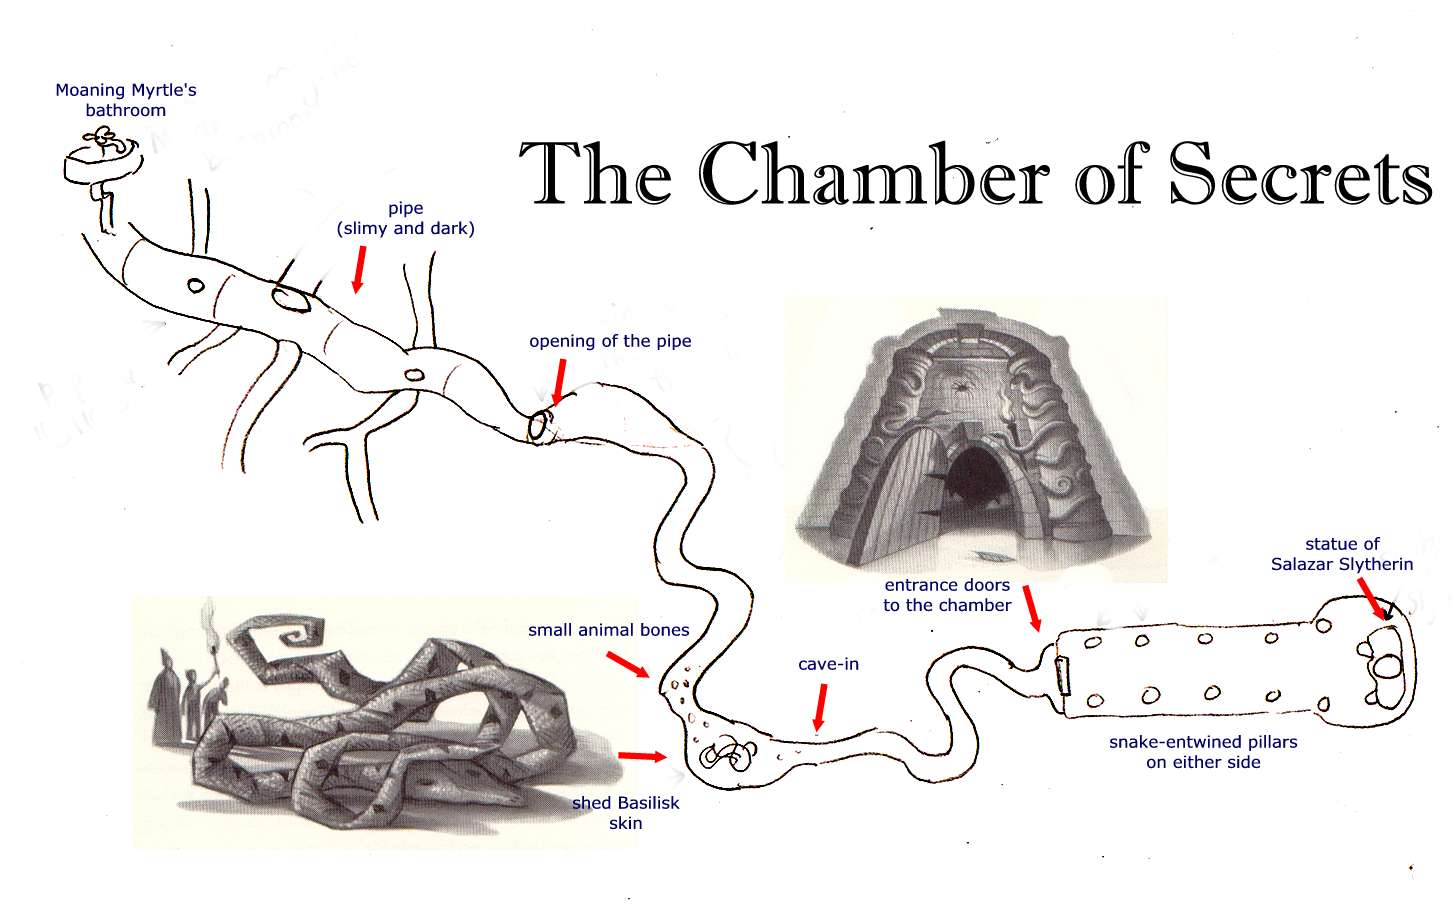 a map of the Chamber of Secrets